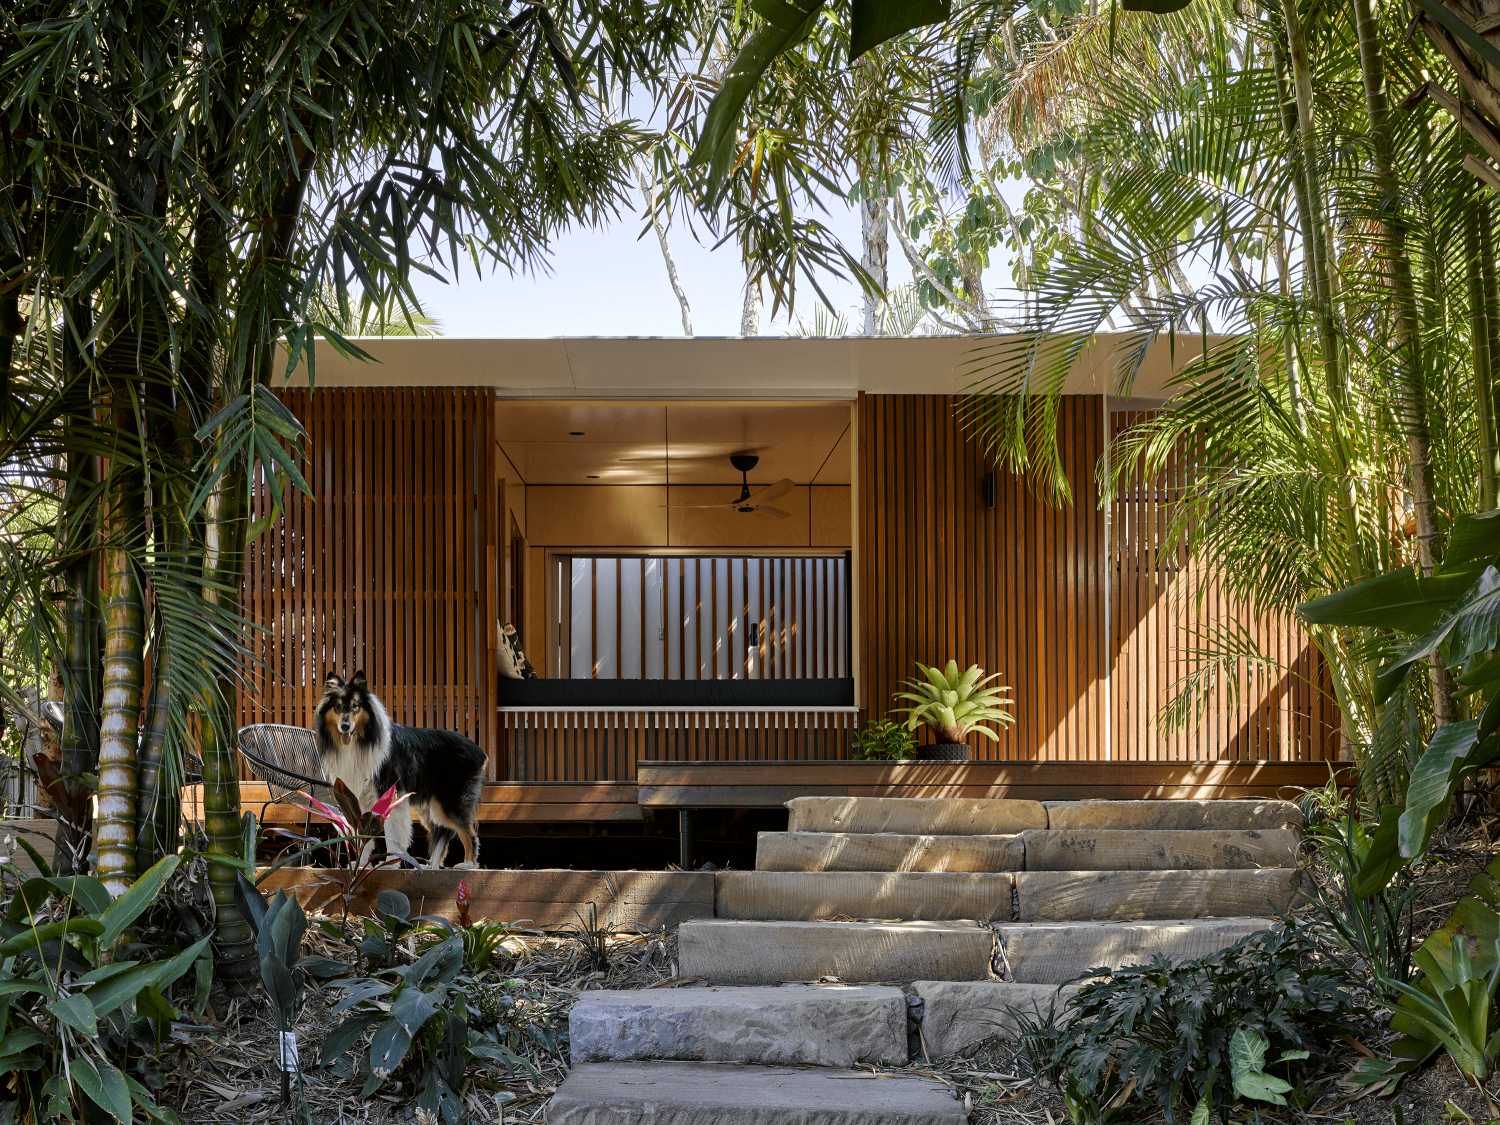 The Garden Bunkie | Tiny Backyard Studio by Reddog Architects